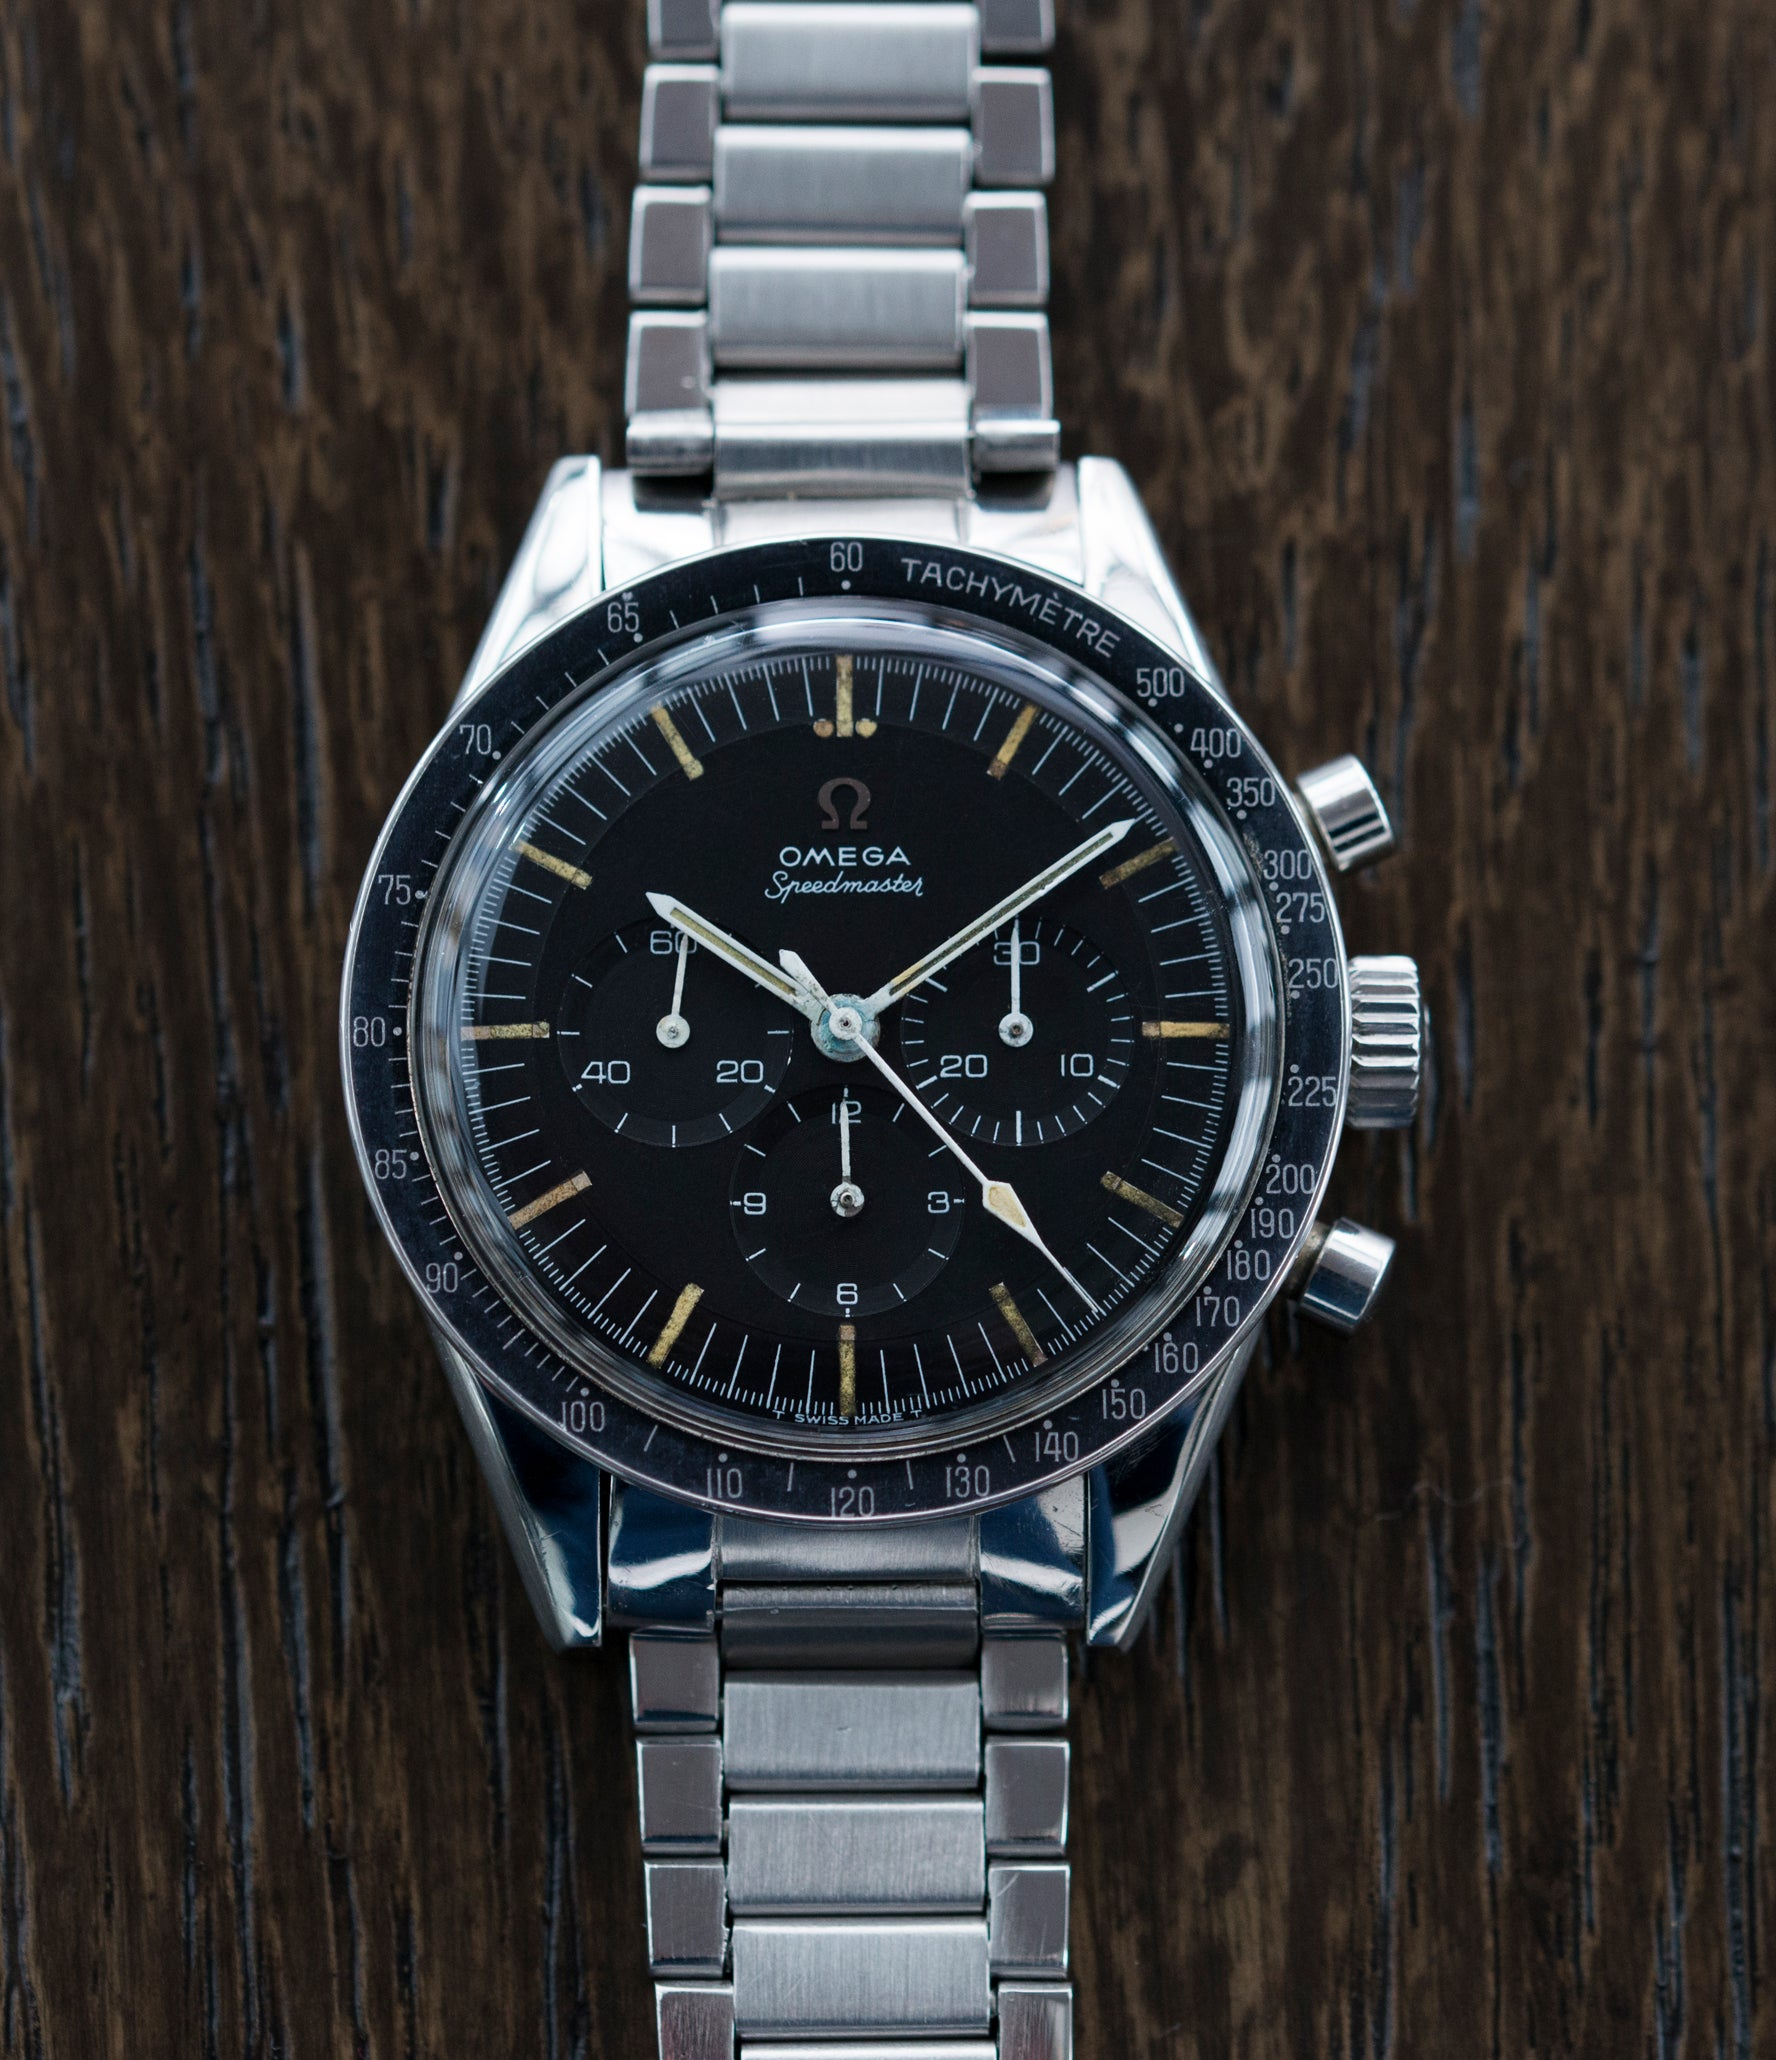 buying vintage Omega Speedmaster Pre-Professional Ed White 105003 steel vintage chronograph 7912 flat-link bracelet for sale online at A Collected Man UK specialist of rare vintage watches